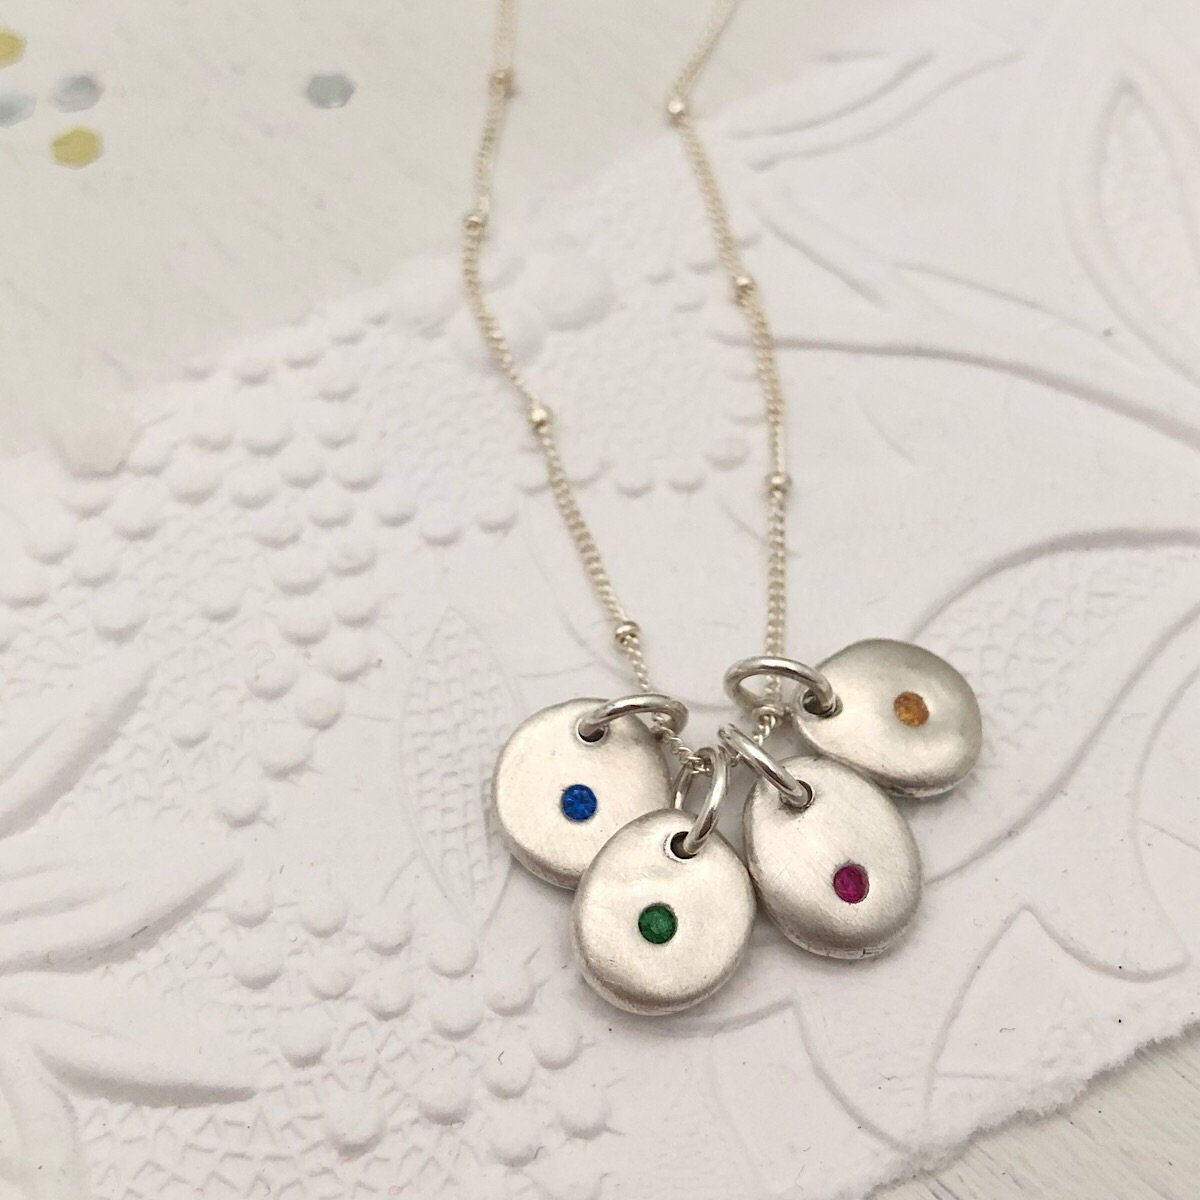 Birthstone Pebbles Necklace